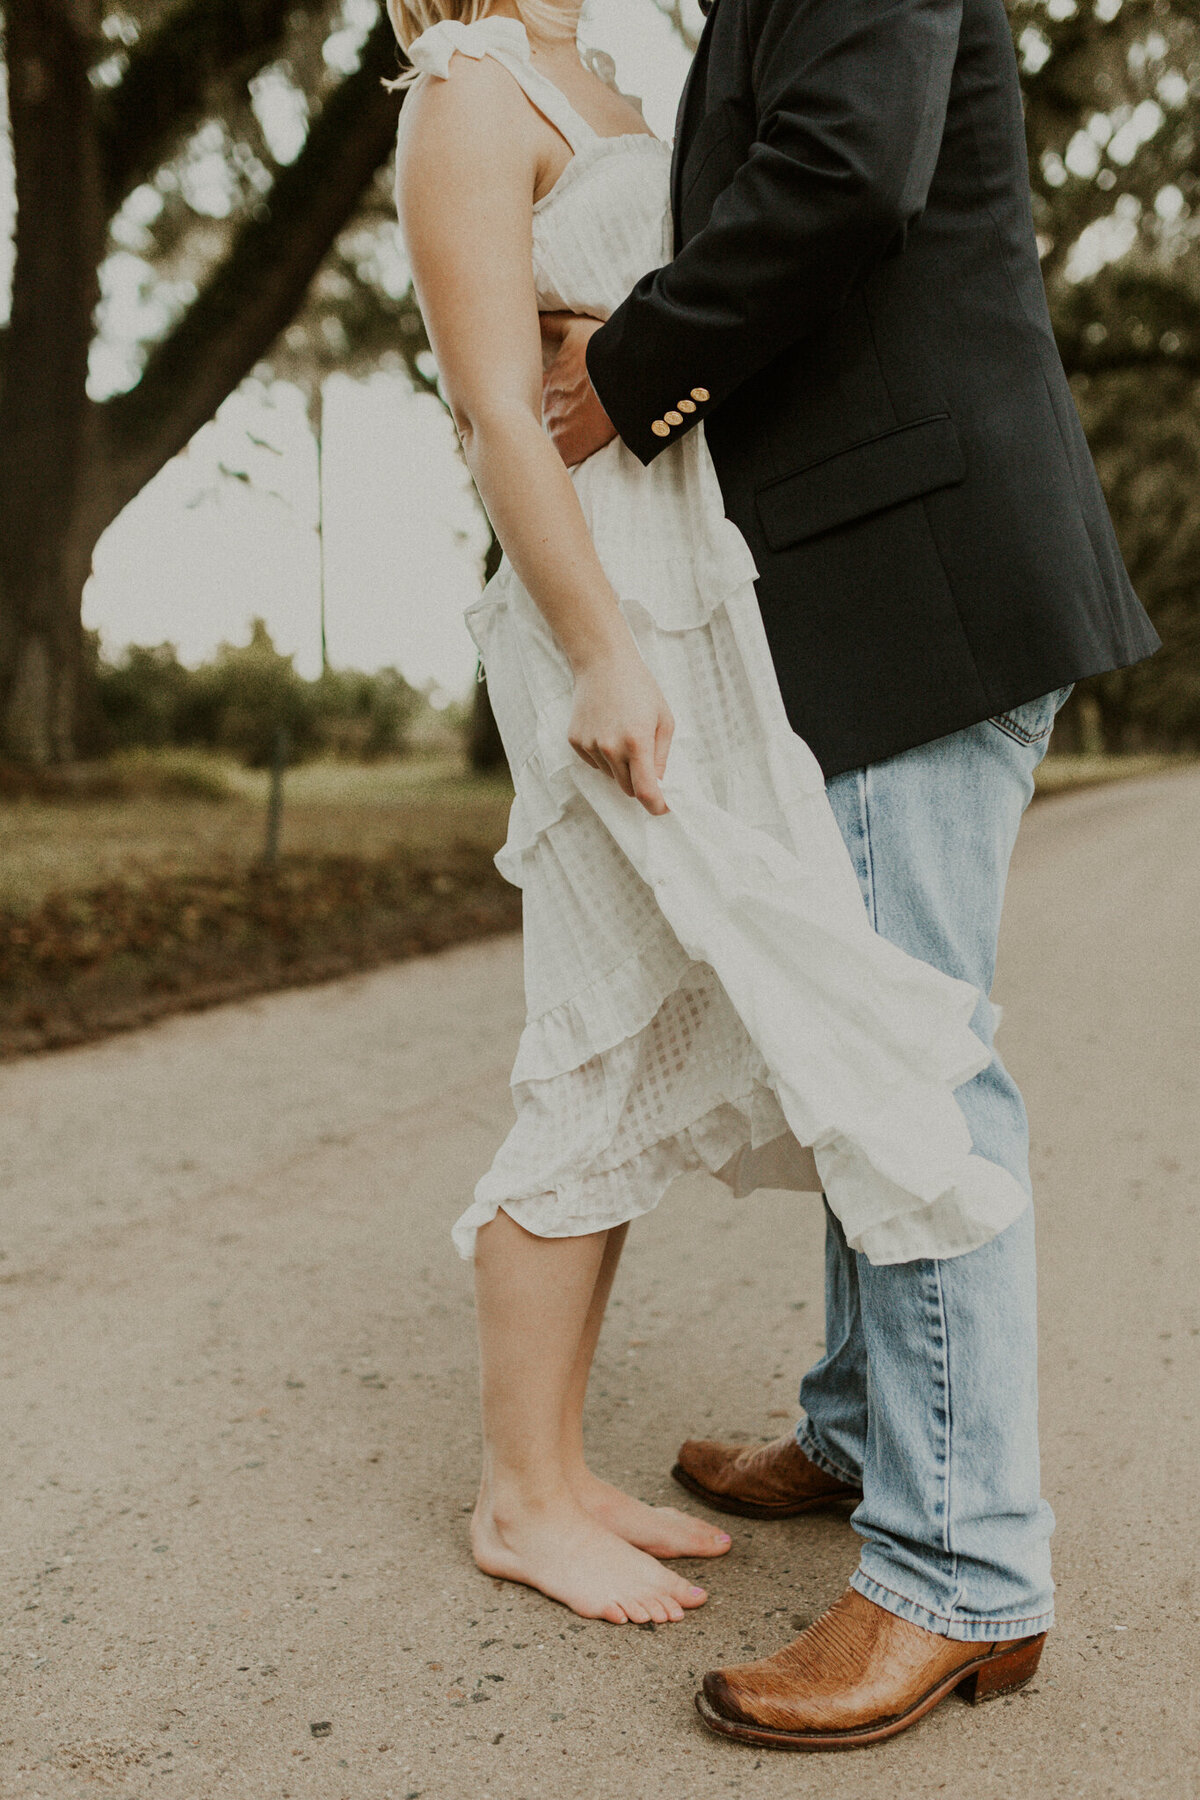 Savannah-Georgia-Wedding-Photographer-Wormsloe-Historic-Site_Anna-Ray-Photography-14